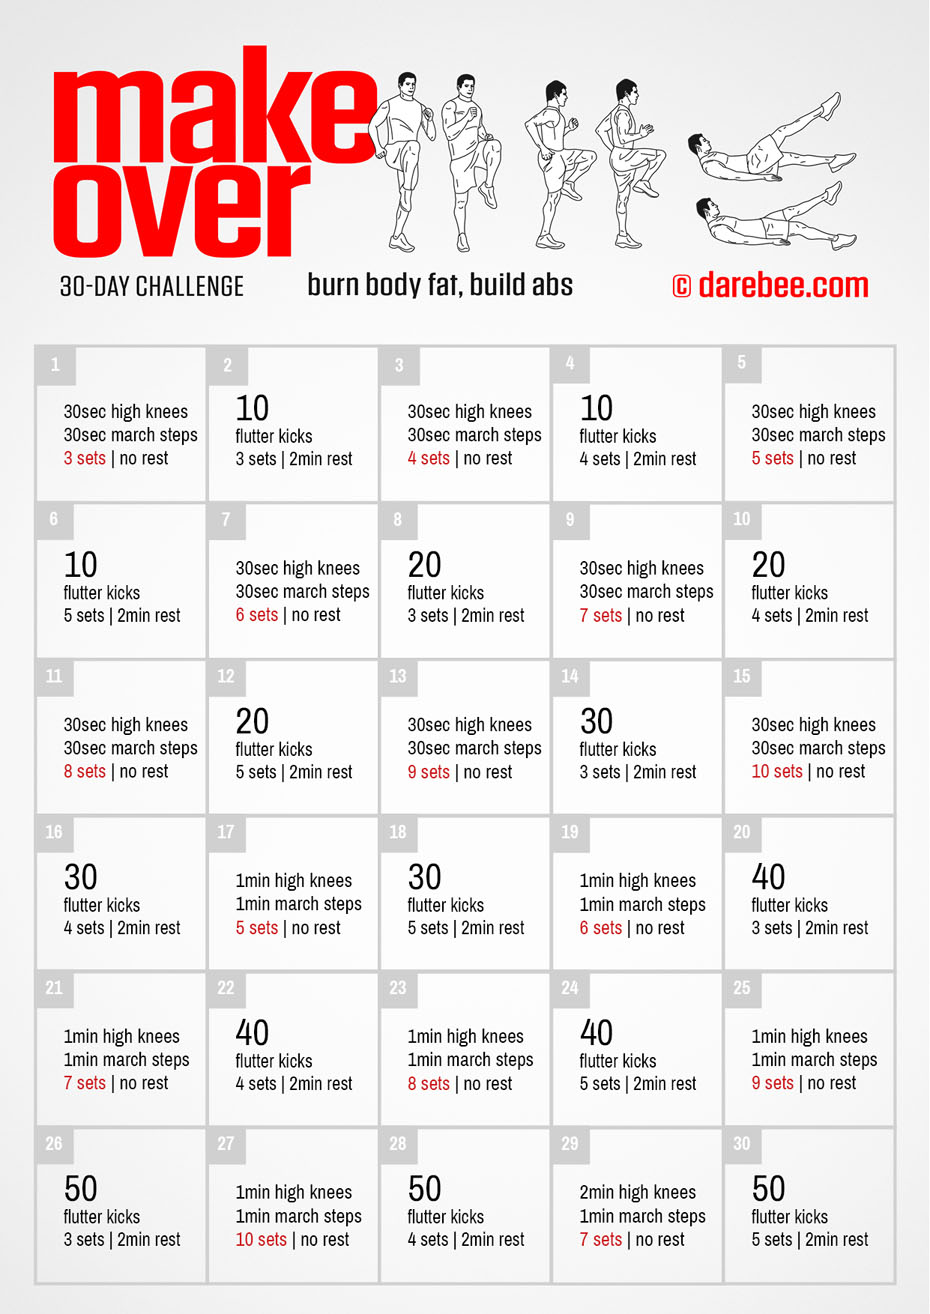 30-Day Makeover Challenge by DAREBEE